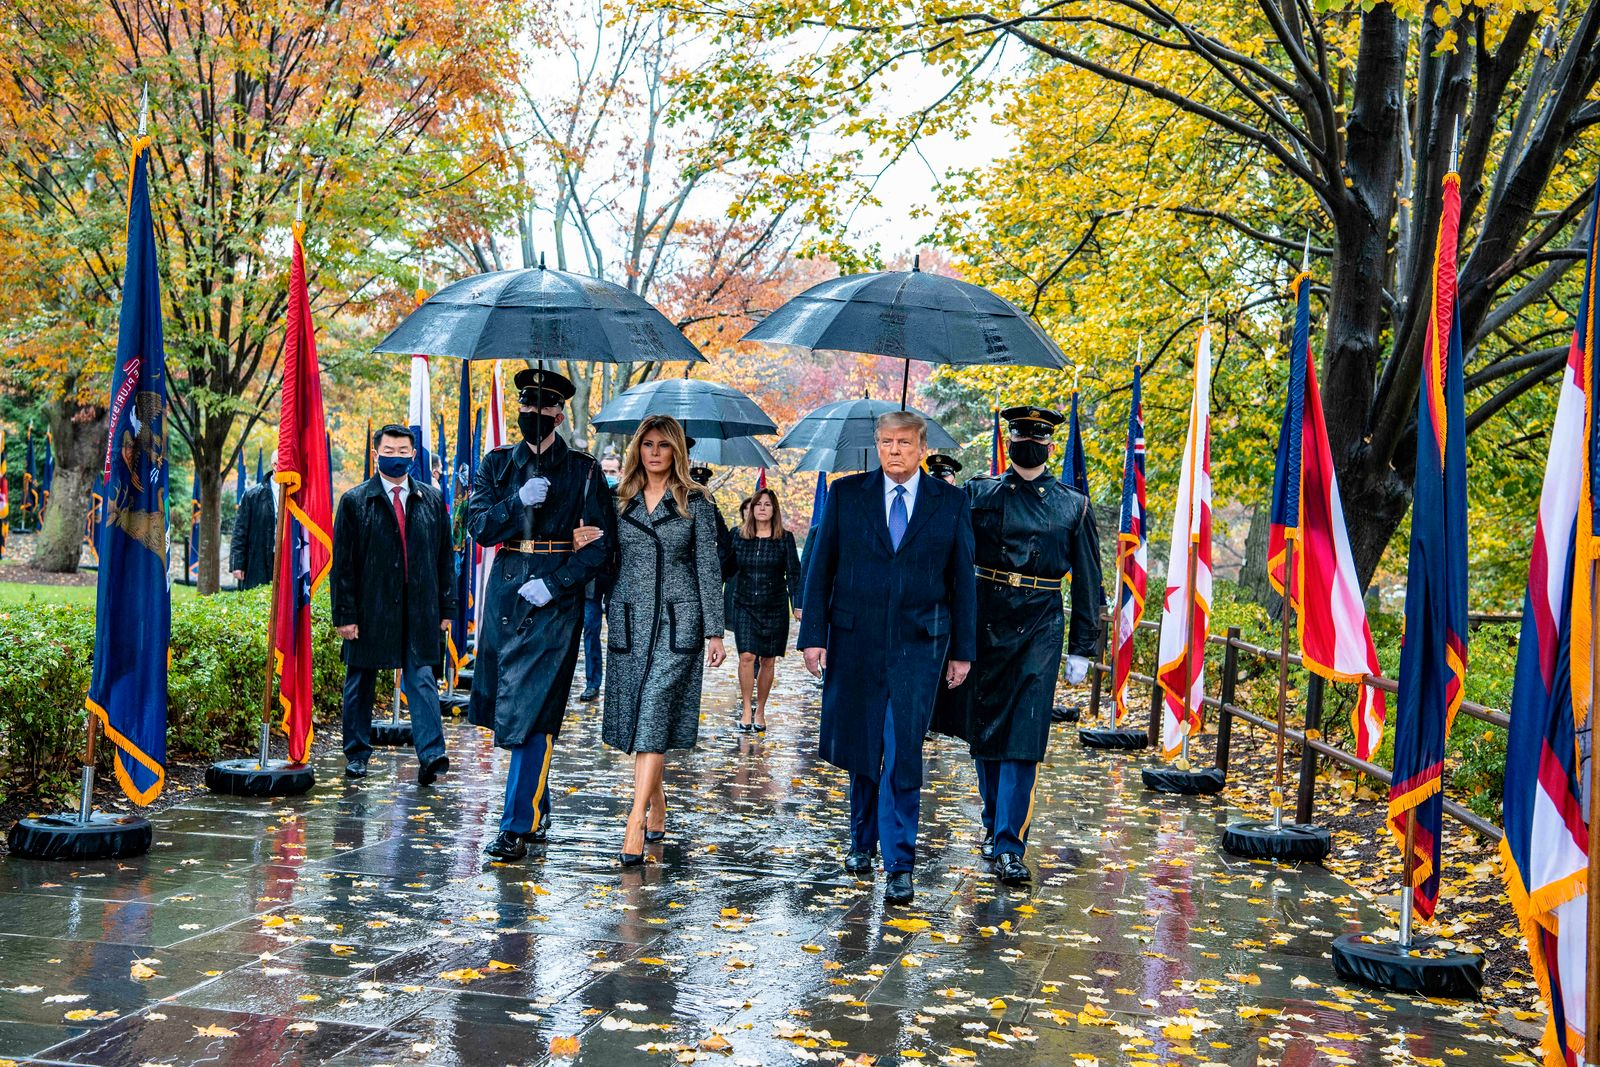 November 11, 2020, Arlington, VA, United States of America: U.S President Donald Trump, right, walks with First Lady Me